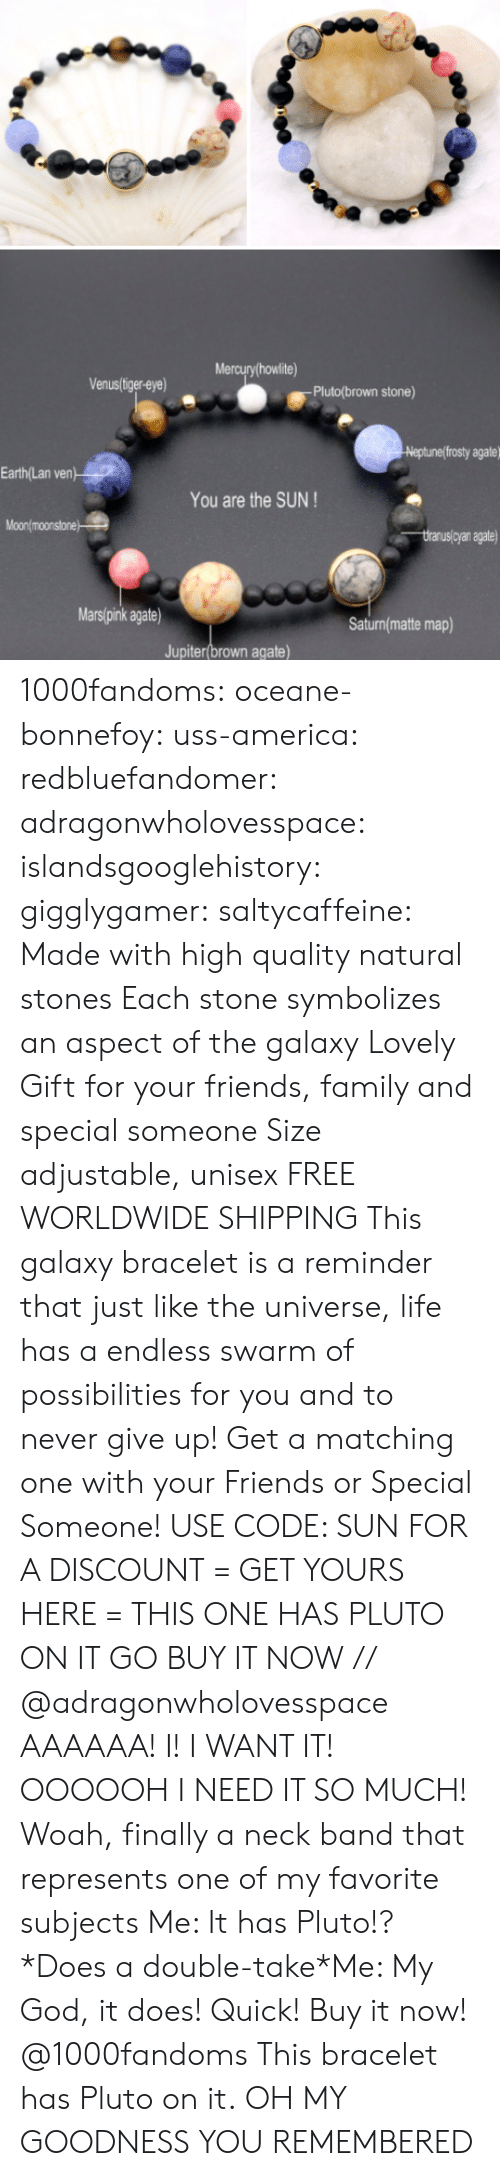 America, Family, and Friends: Mercury howlite)  Venus/liger-eye)  Pluto(brown stone)  eptunef frosty agate  Earth/Lan ven  You are the SUN  Moonlmoonstone  yan agate  Mars(pink agate)  Saturn(matte map)  Jupiter(brown agate) 1000fandoms:  oceane-bonnefoy:  uss-america:  redbluefandomer: adragonwholovesspace:  islandsgooglehistory:   gigglygamer:  saltycaffeine:  Made with high quality natural stones Each stone symbolizes an aspect of the galaxy Lovely Gift for your friends, family and special someone Size adjustable, unisex FREE WORLDWIDE SHIPPING This galaxy bracelet is a reminder that just like the universe, life has a endless swarm of possibilities for you and to never give up!  Get a matching one with your Friends or Special Someone! USE CODE: SUN FOR A DISCOUNT = GET YOURS HERE =   THIS ONE HAS PLUTO ON IT GO BUY IT NOW   // @adragonwholovesspace    AAAAAA! I! I WANT IT! OOOOOH I NEED IT SO MUCH!   Woah, finally a neck band that represents one of my favorite subjects    Me: It has Pluto!? *Does a double-take*Me: My God, it does! Quick!  Buy it now!  @1000fandoms This bracelet has Pluto on it.  OH MY GOODNESS YOU REMEMBERED